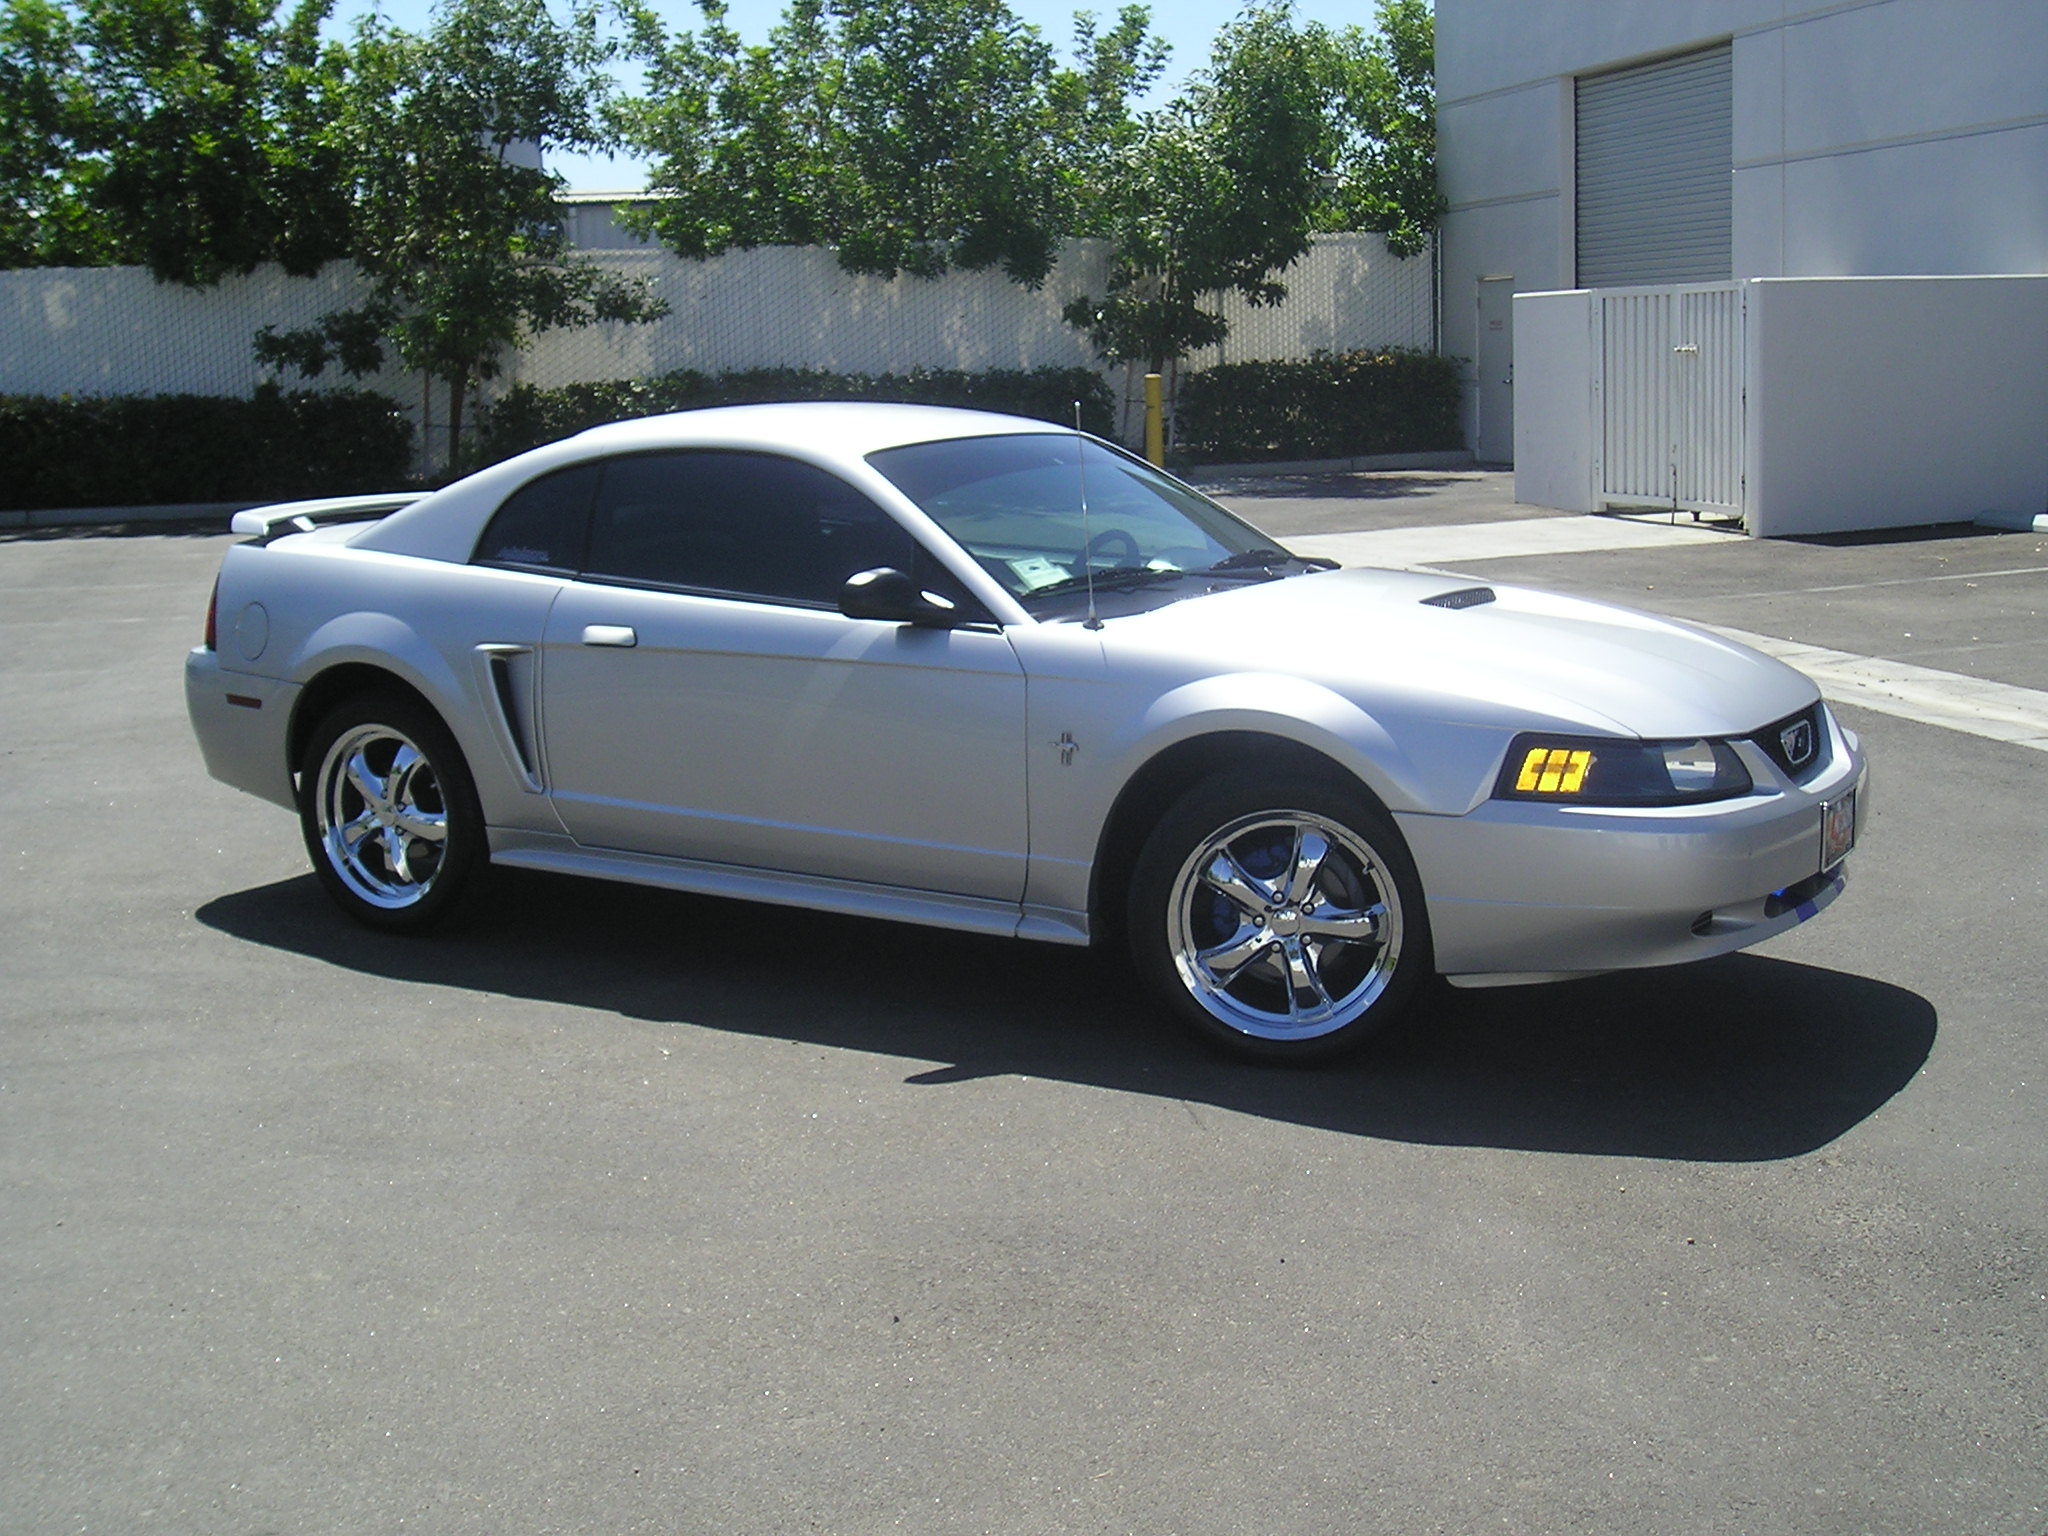 Ford Mustang 2001 #1